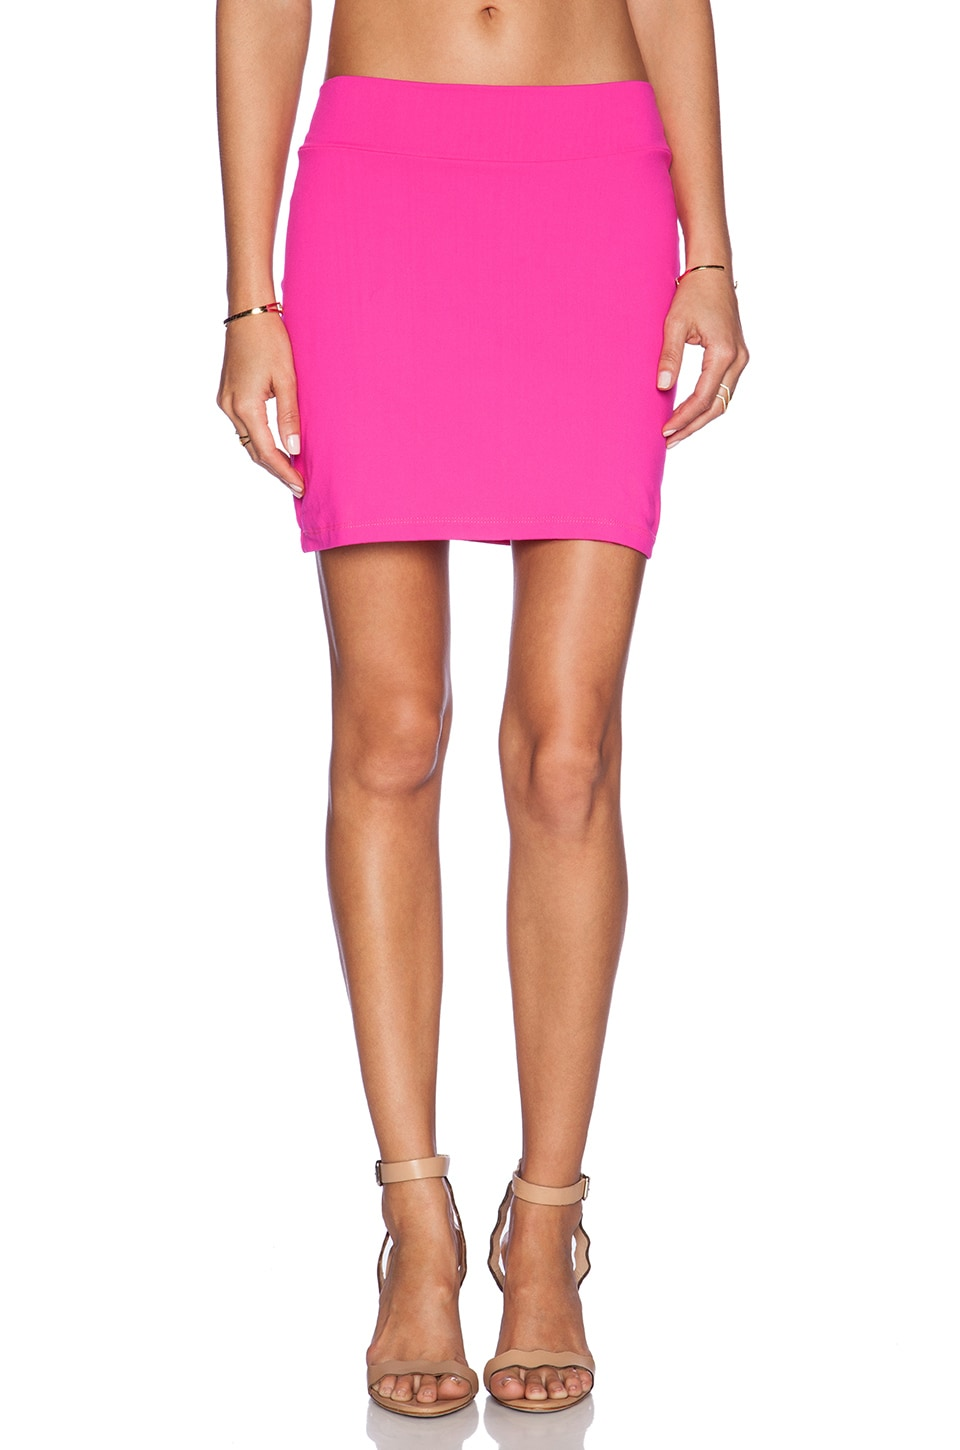 Susana Monaco Slim Mini Skirt in Pink Glo